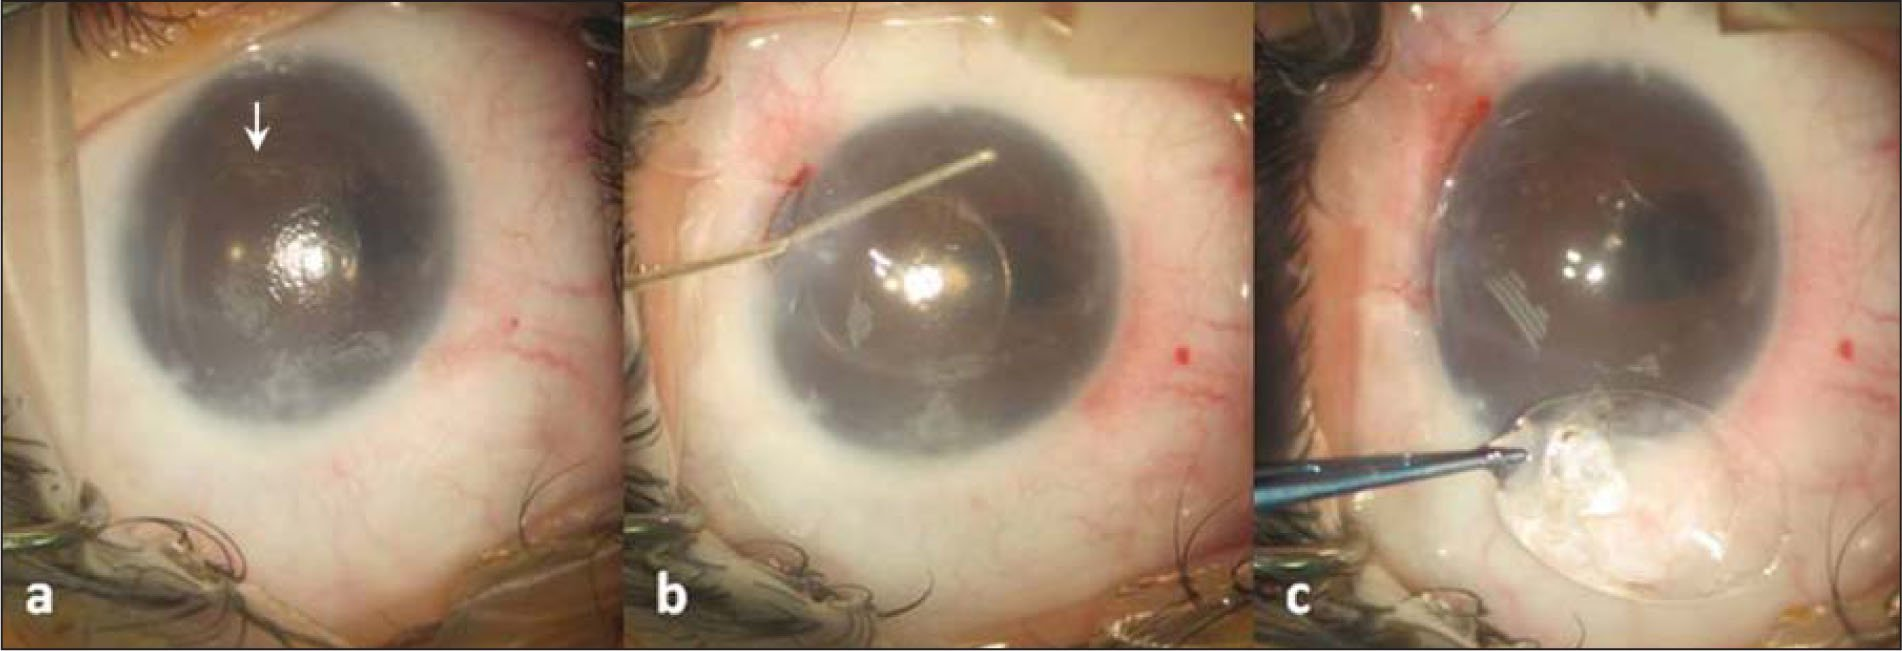 The right eye of case 1. (A) Pseudophakic corneal decompensation resulting from the dislocated Artisan Iris-Claw anterior chamber intraocular lens implant (AC-IOL) (Ophtec BV, Groningen, The Netherlands). The nasal iris claw of the lens was not clipped (arrow), resulting in the temporal displacement of the AC-IOL. The eccentric pupil is likely to be caused by previous surgical trauma and chronic in3 ammation. (B and C) Surgical explantation of the intraocular lens. Under viscoelastic, the temporal iris claw of the AC-IOL was dislodged; the AC-IOL was rotated and explanted through a superior corneal incision.